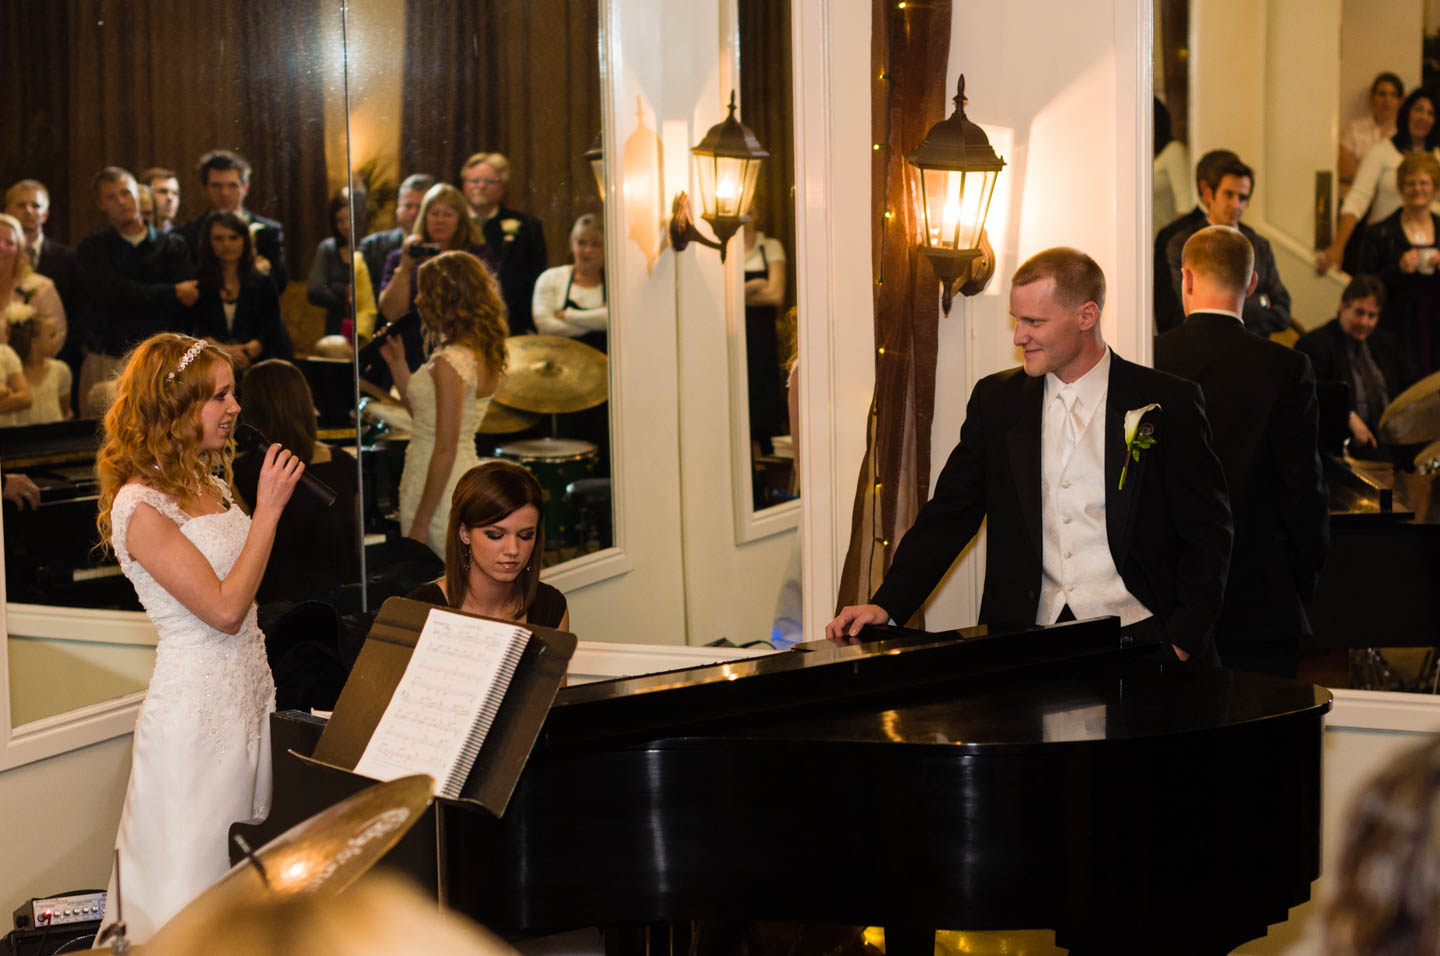 Bride serenades the groom at the grand piano